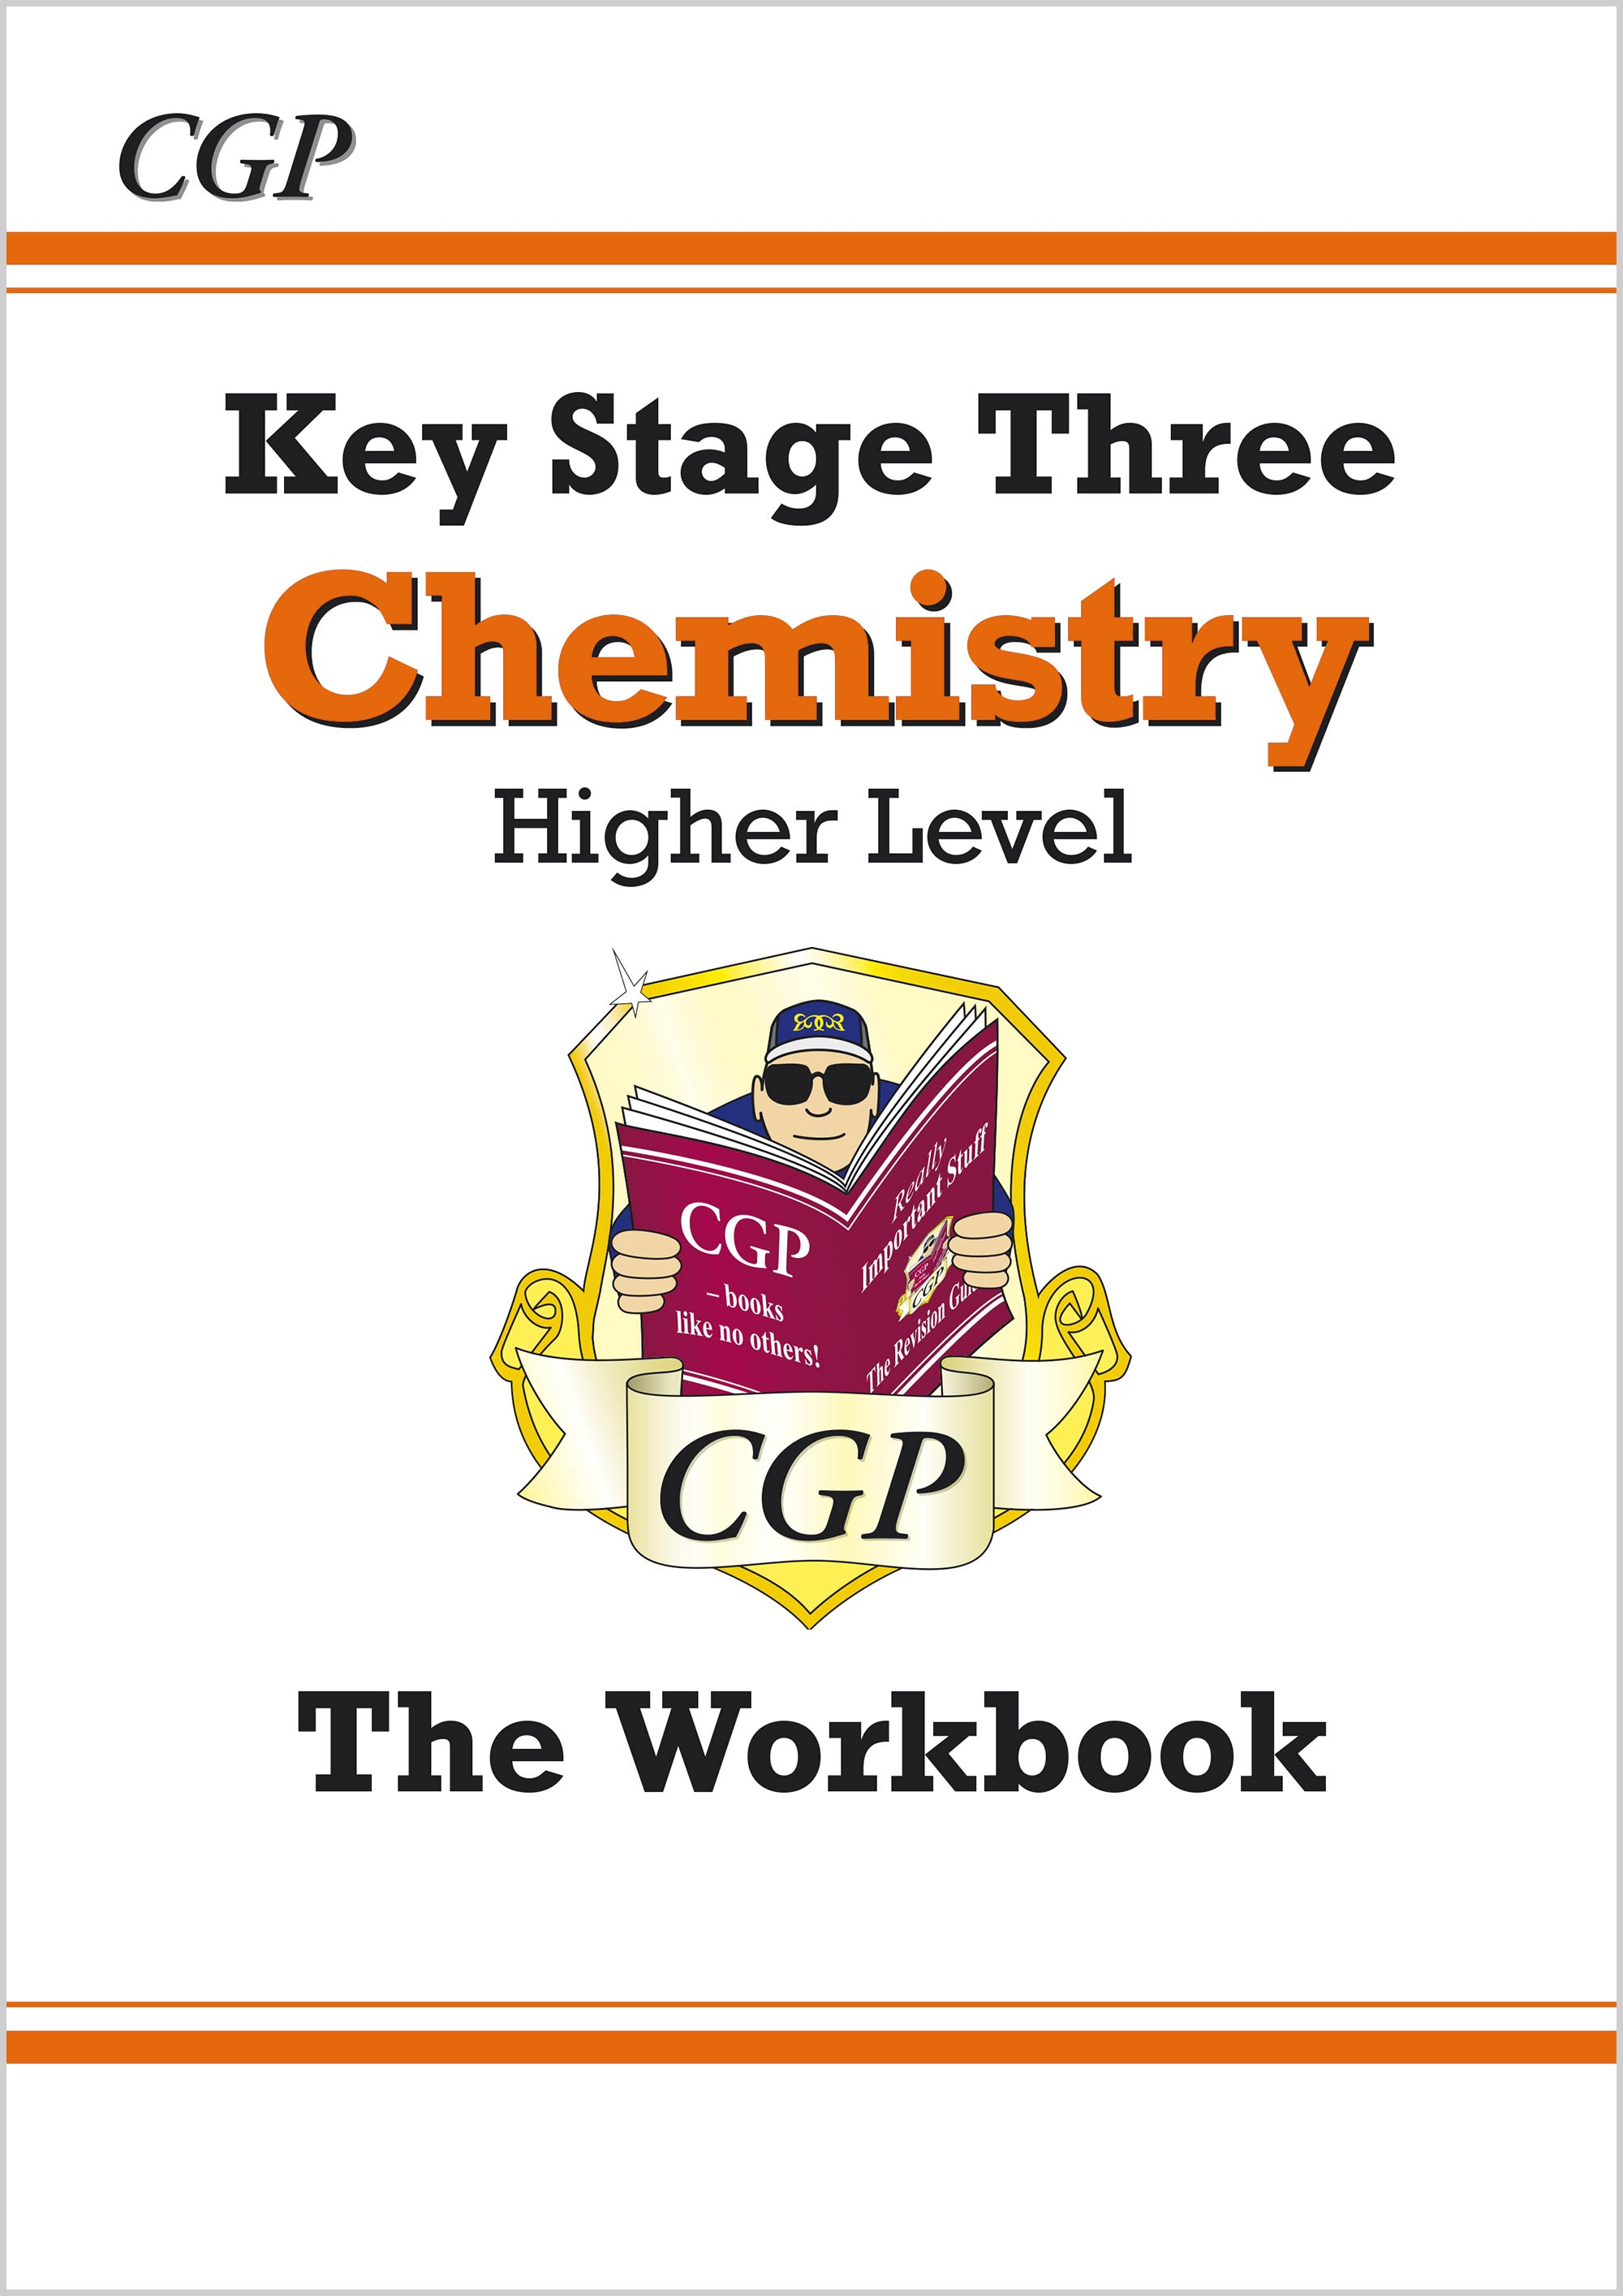 CHW32 - KS3 Chemistry Workbook - Higher